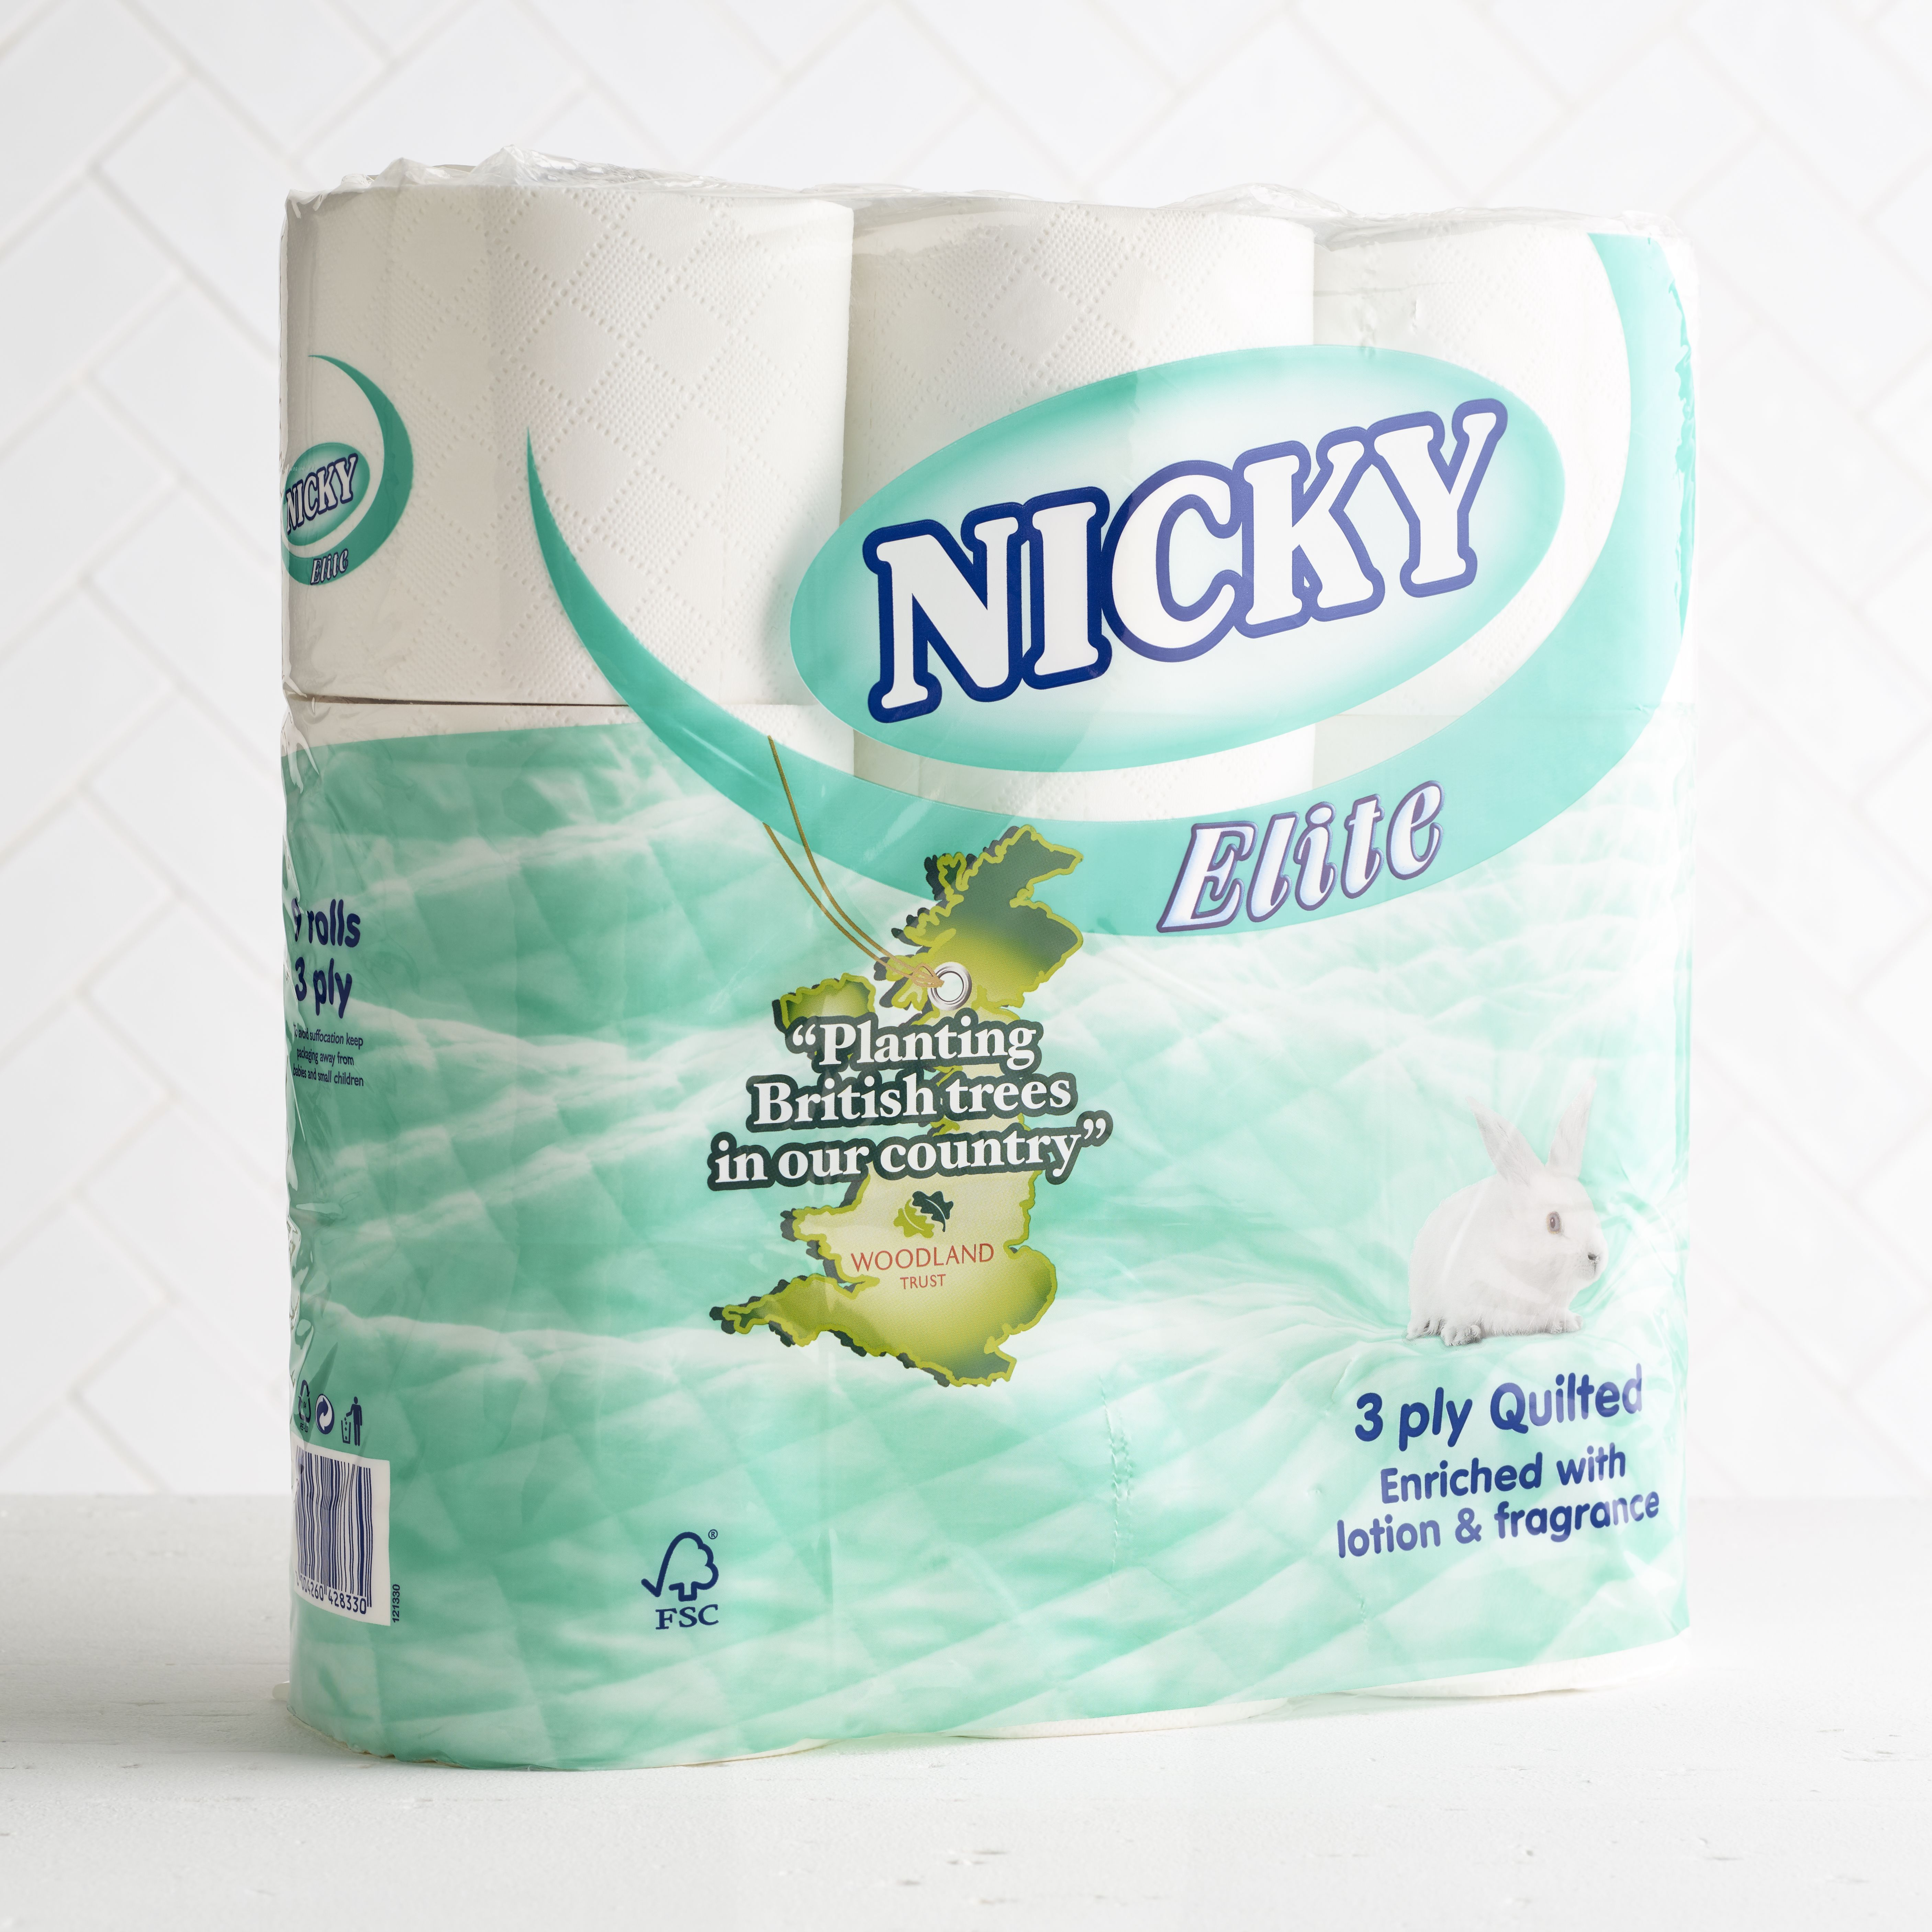 Nicky Elite Toilet Rolls, 9 pack